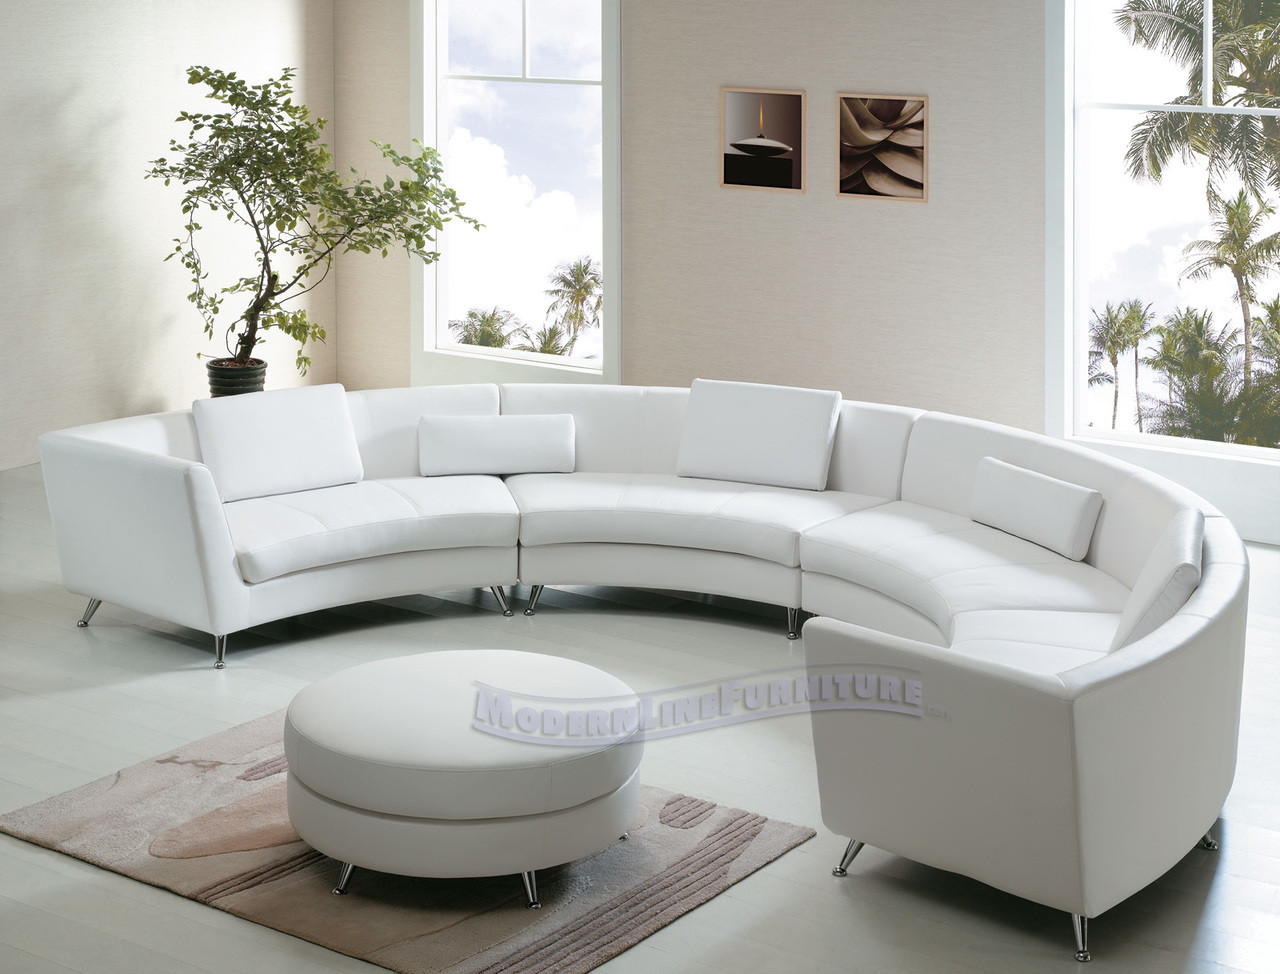 8004 Exclusive Extra Long Curved Sectional Sofa With An Ottoman